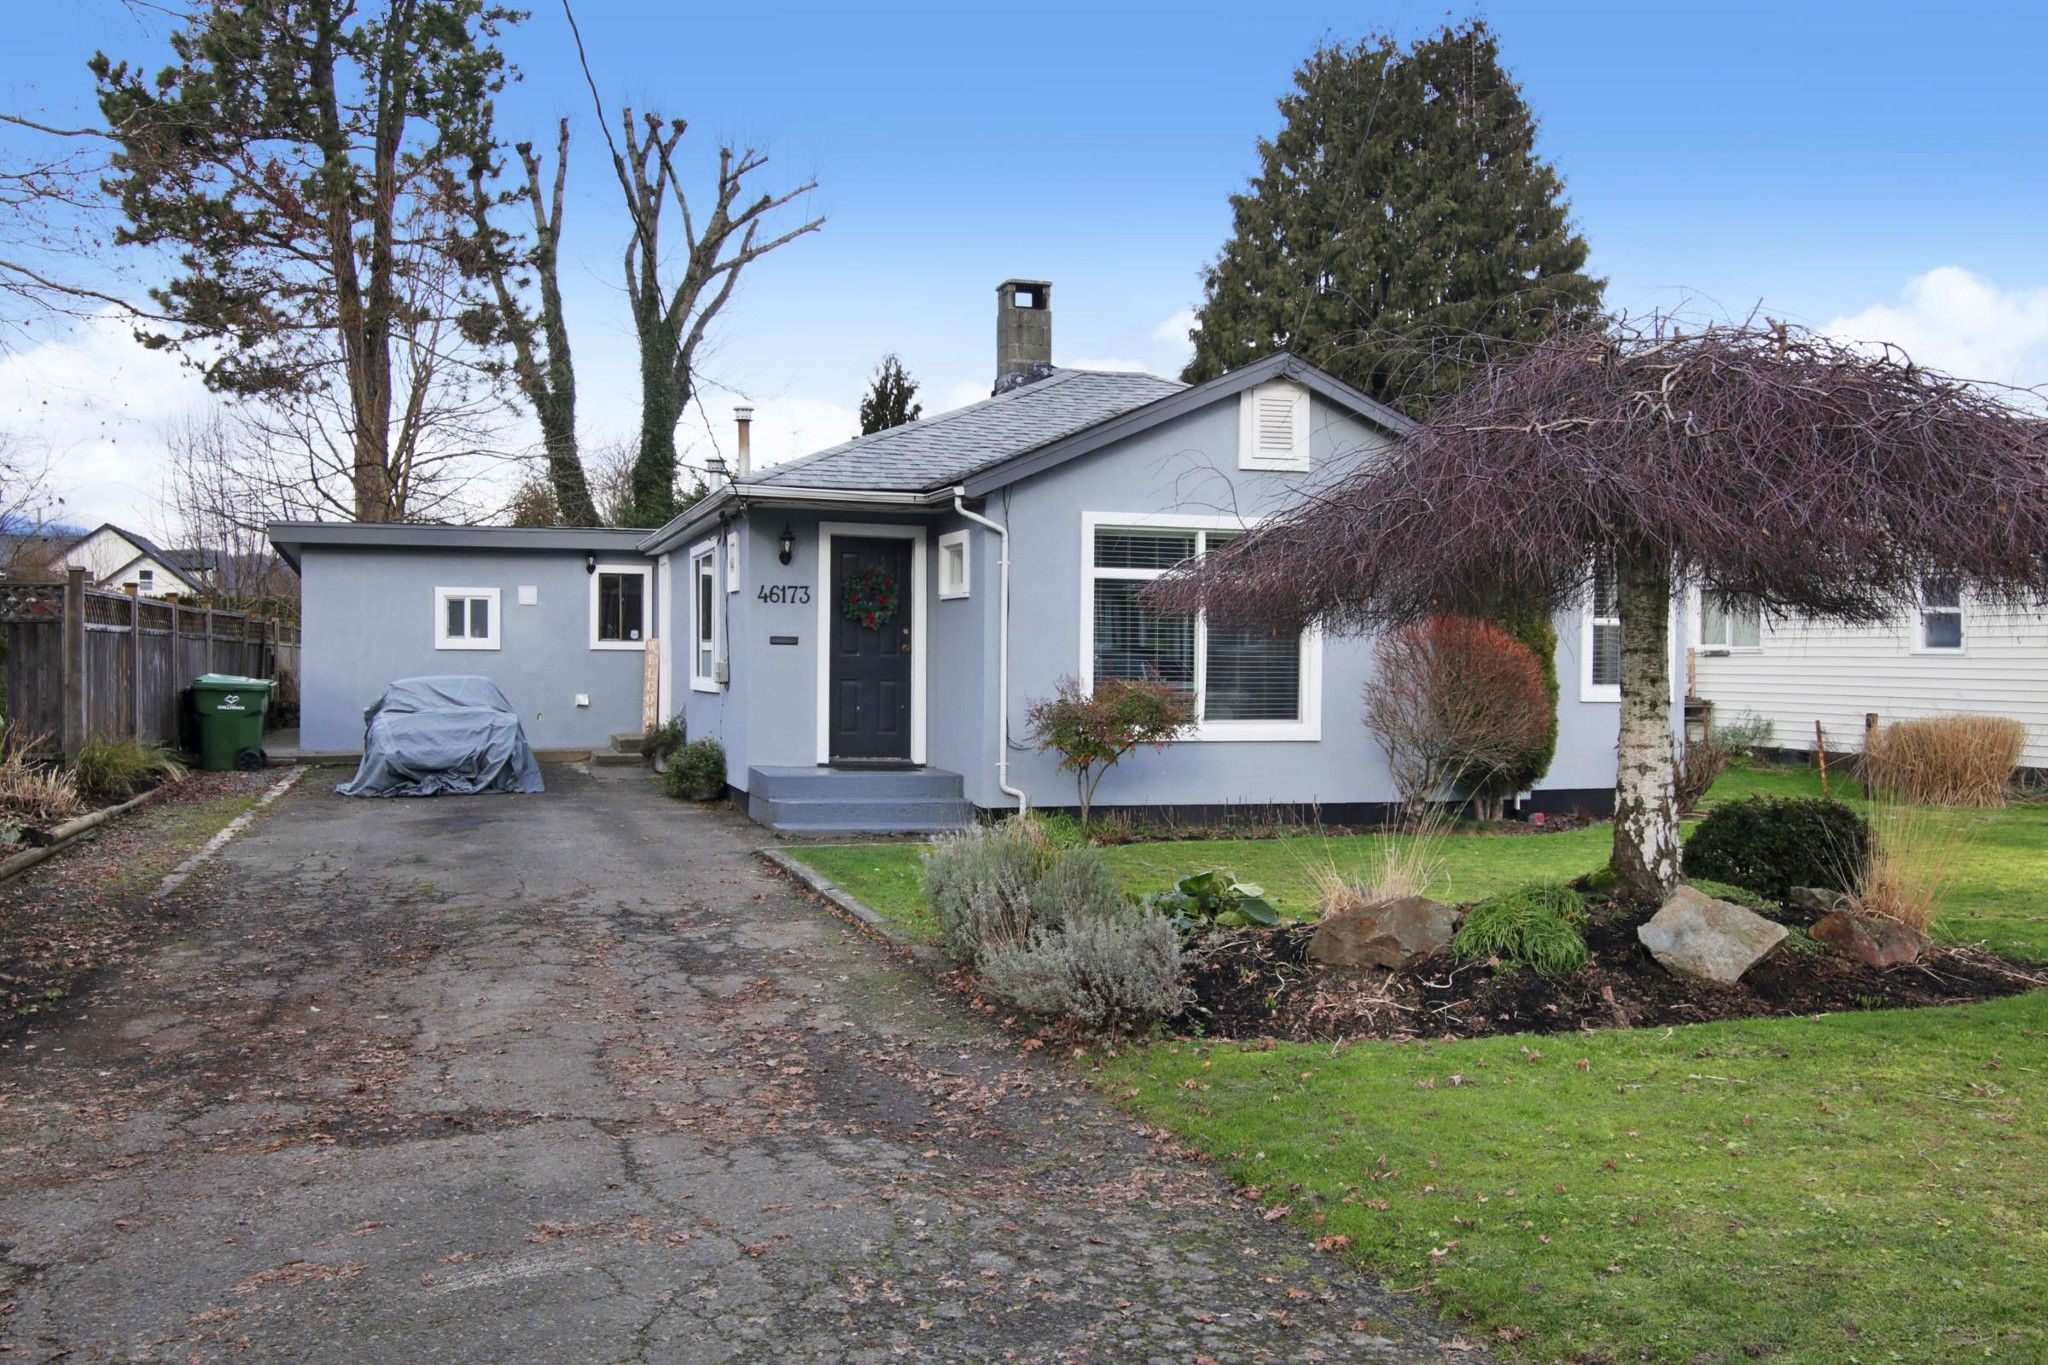 Main Photo: 46173 LEWIS Avenue in Chilliwack: Chilliwack N Yale-Well House for sale : MLS®# R2531091